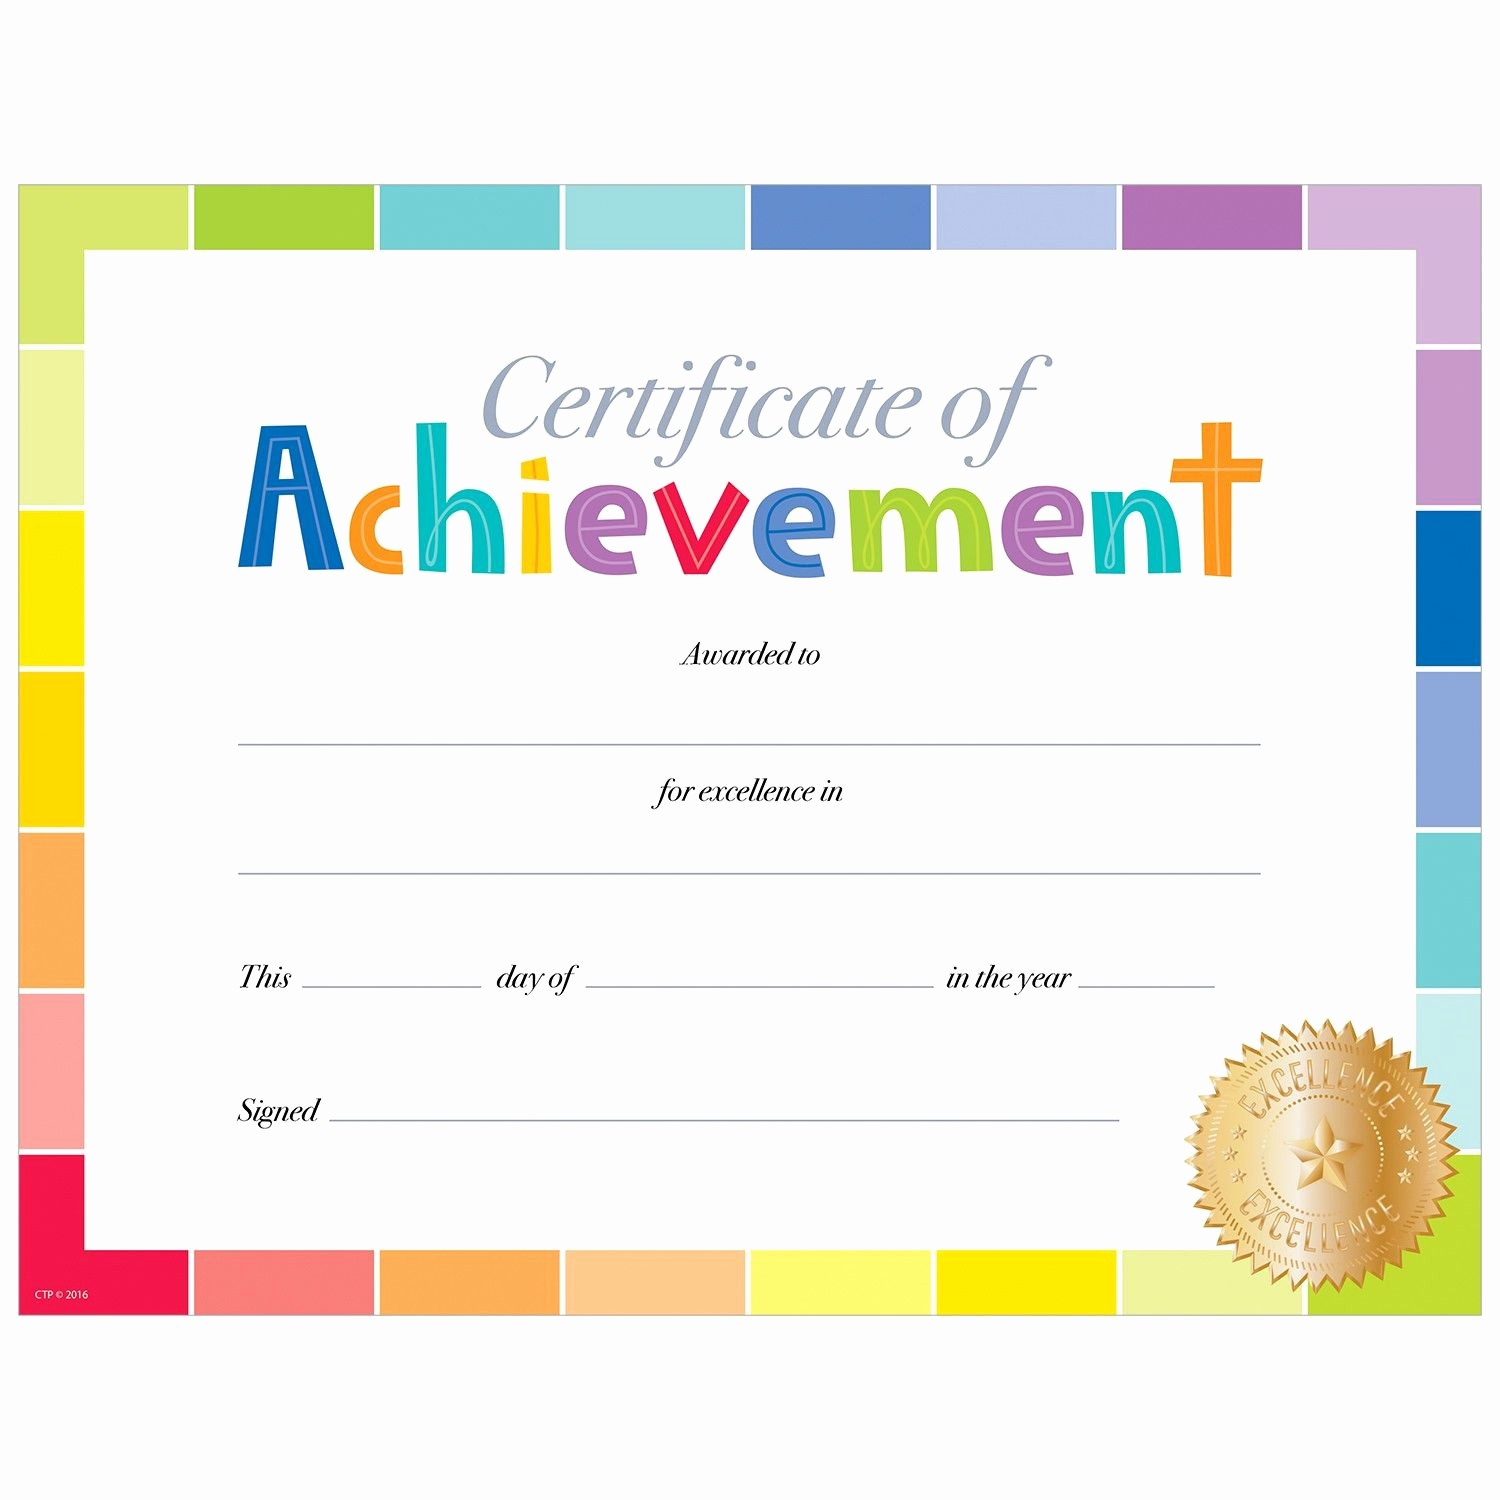 Student Certificate Template Google Docs Awesome Award Certificates Kids Art Google Search